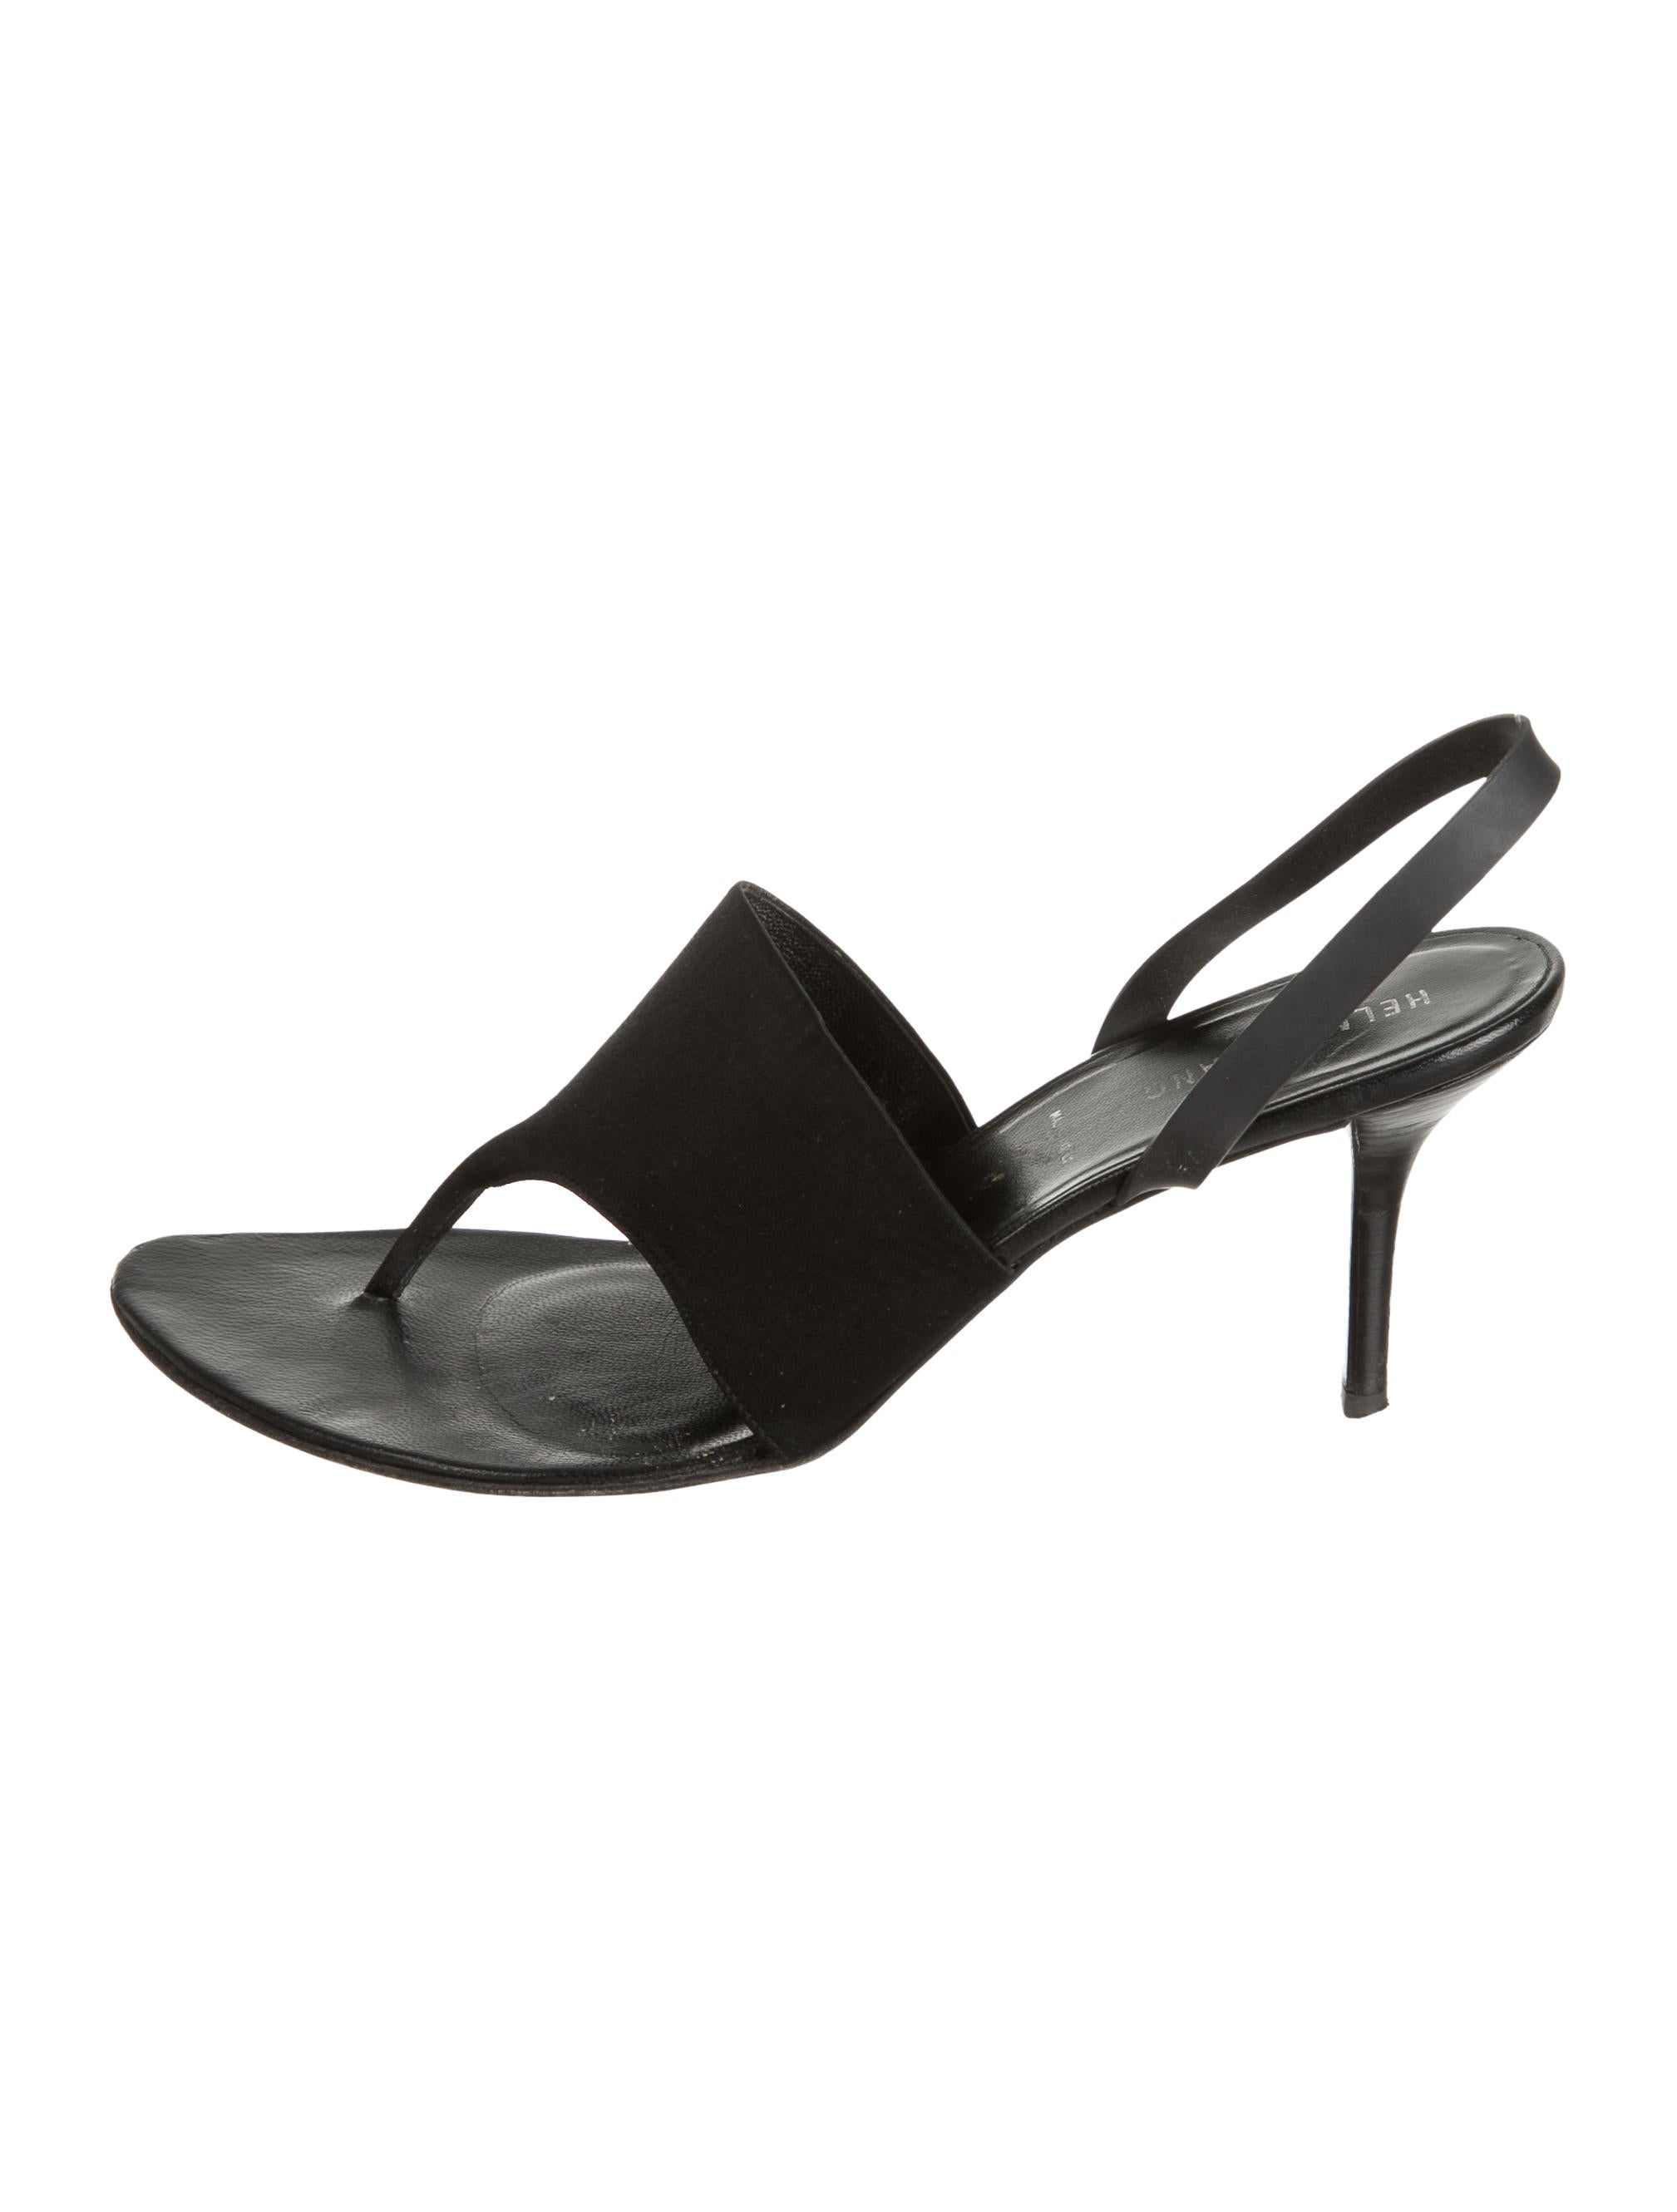 discount official site outlet explore Helmut Lang Leather Slingback Sandals sale purchase sale best prices 9j8ZyOaczn